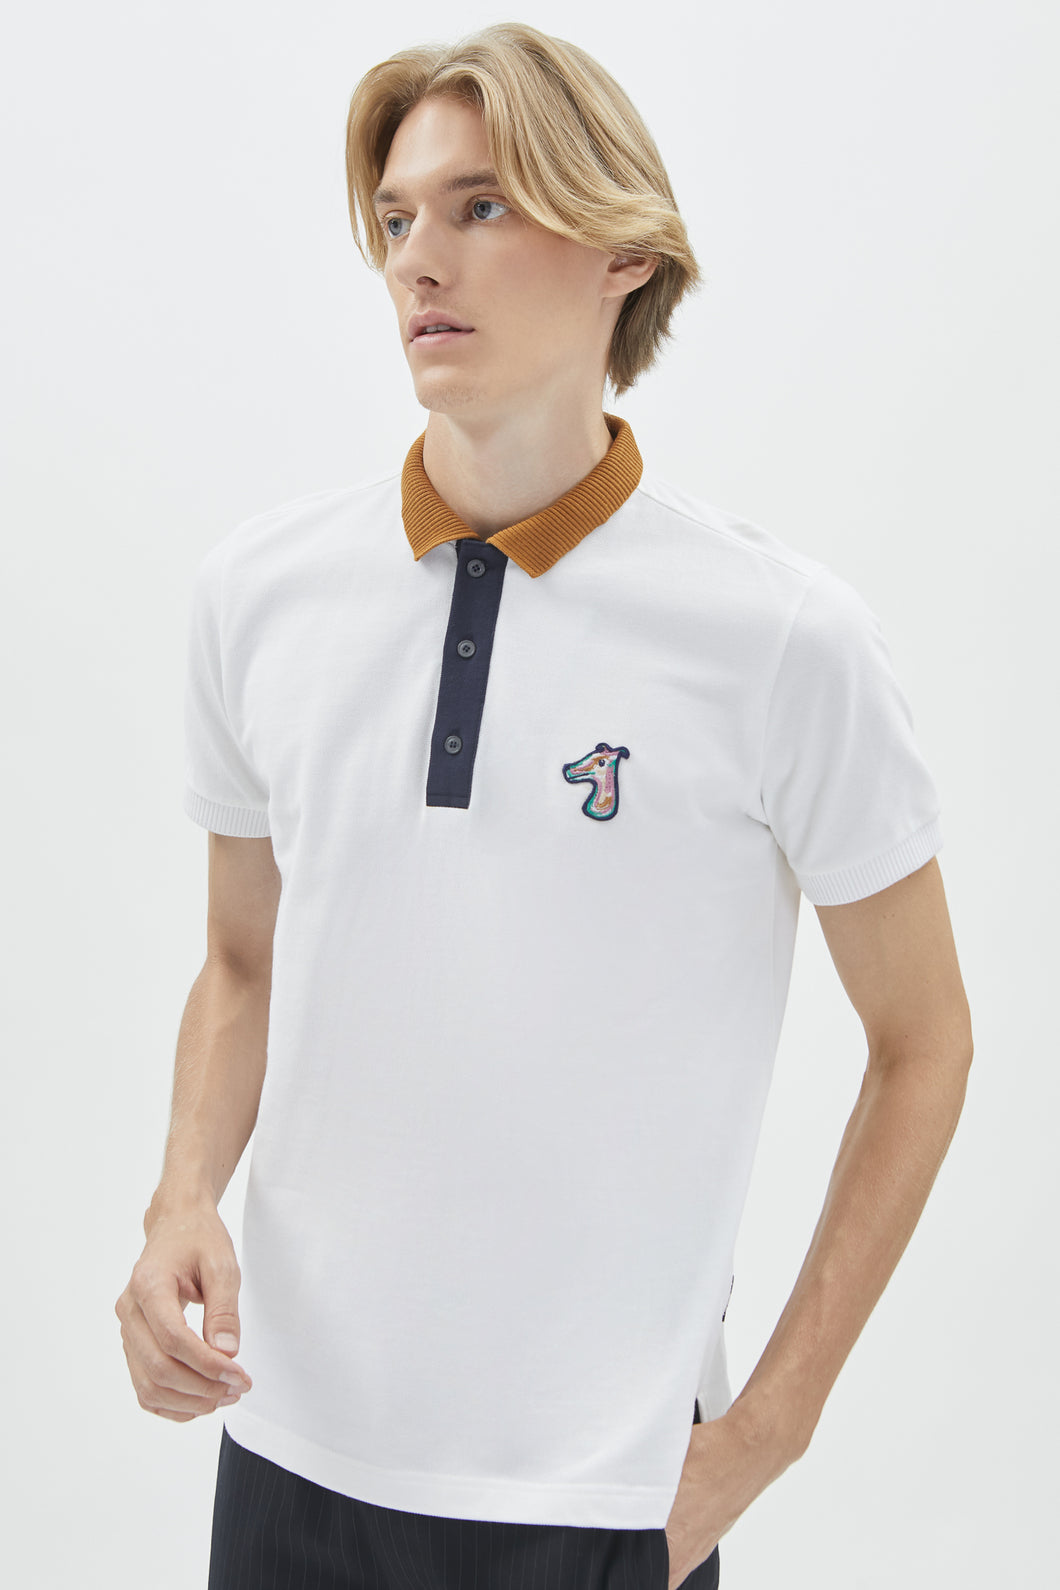 COSTRAST COLLAR PIQUE POLO SHIRT  WITH LOGO EMBROIDED